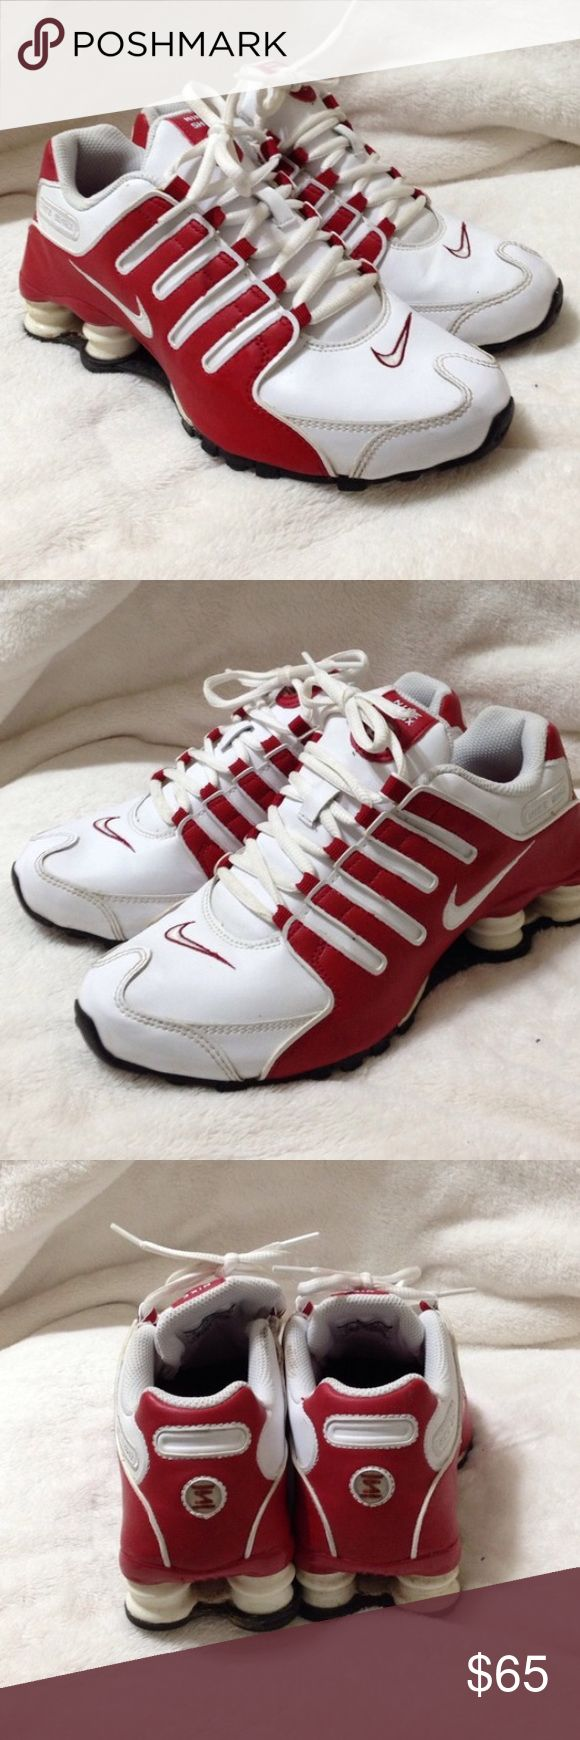 Women's Nike shocks like new size 6 Beautiful comfy size 6w white n red Nike shocks. Worn only a few times so these are in great condition Nike Shoes Sneakers